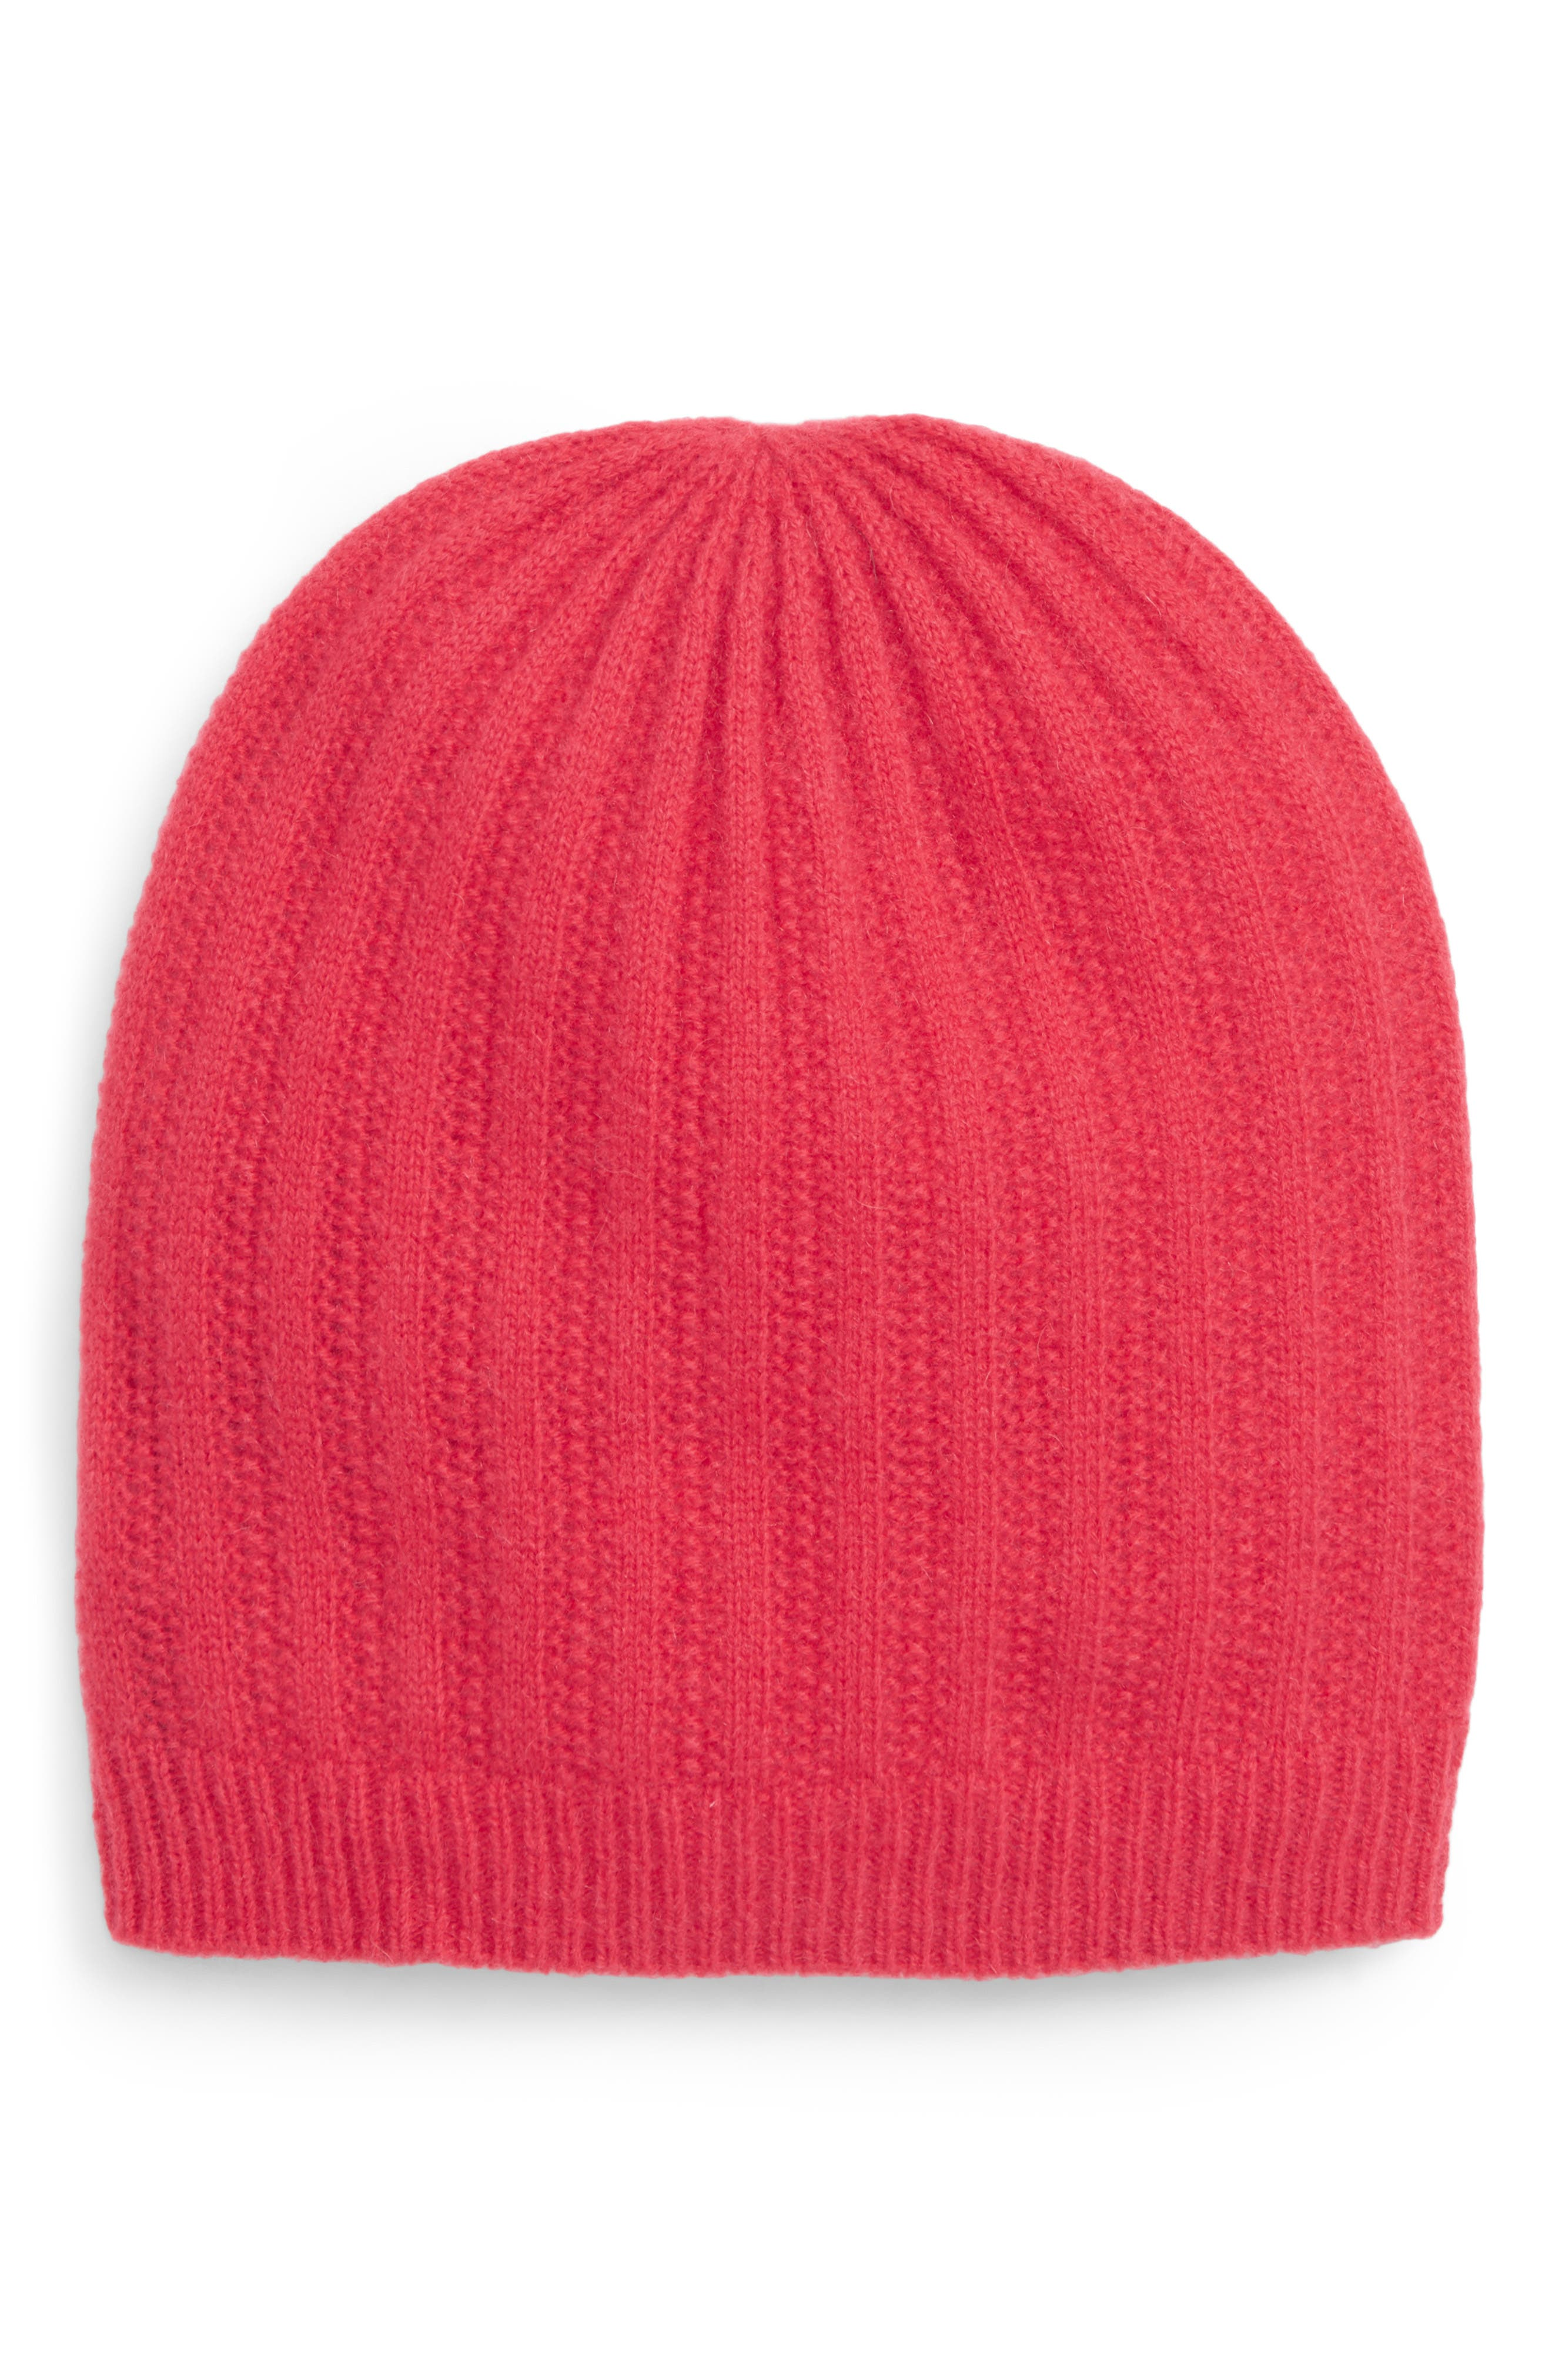 Halogen Ribbed Cashmere Beanie - Pink